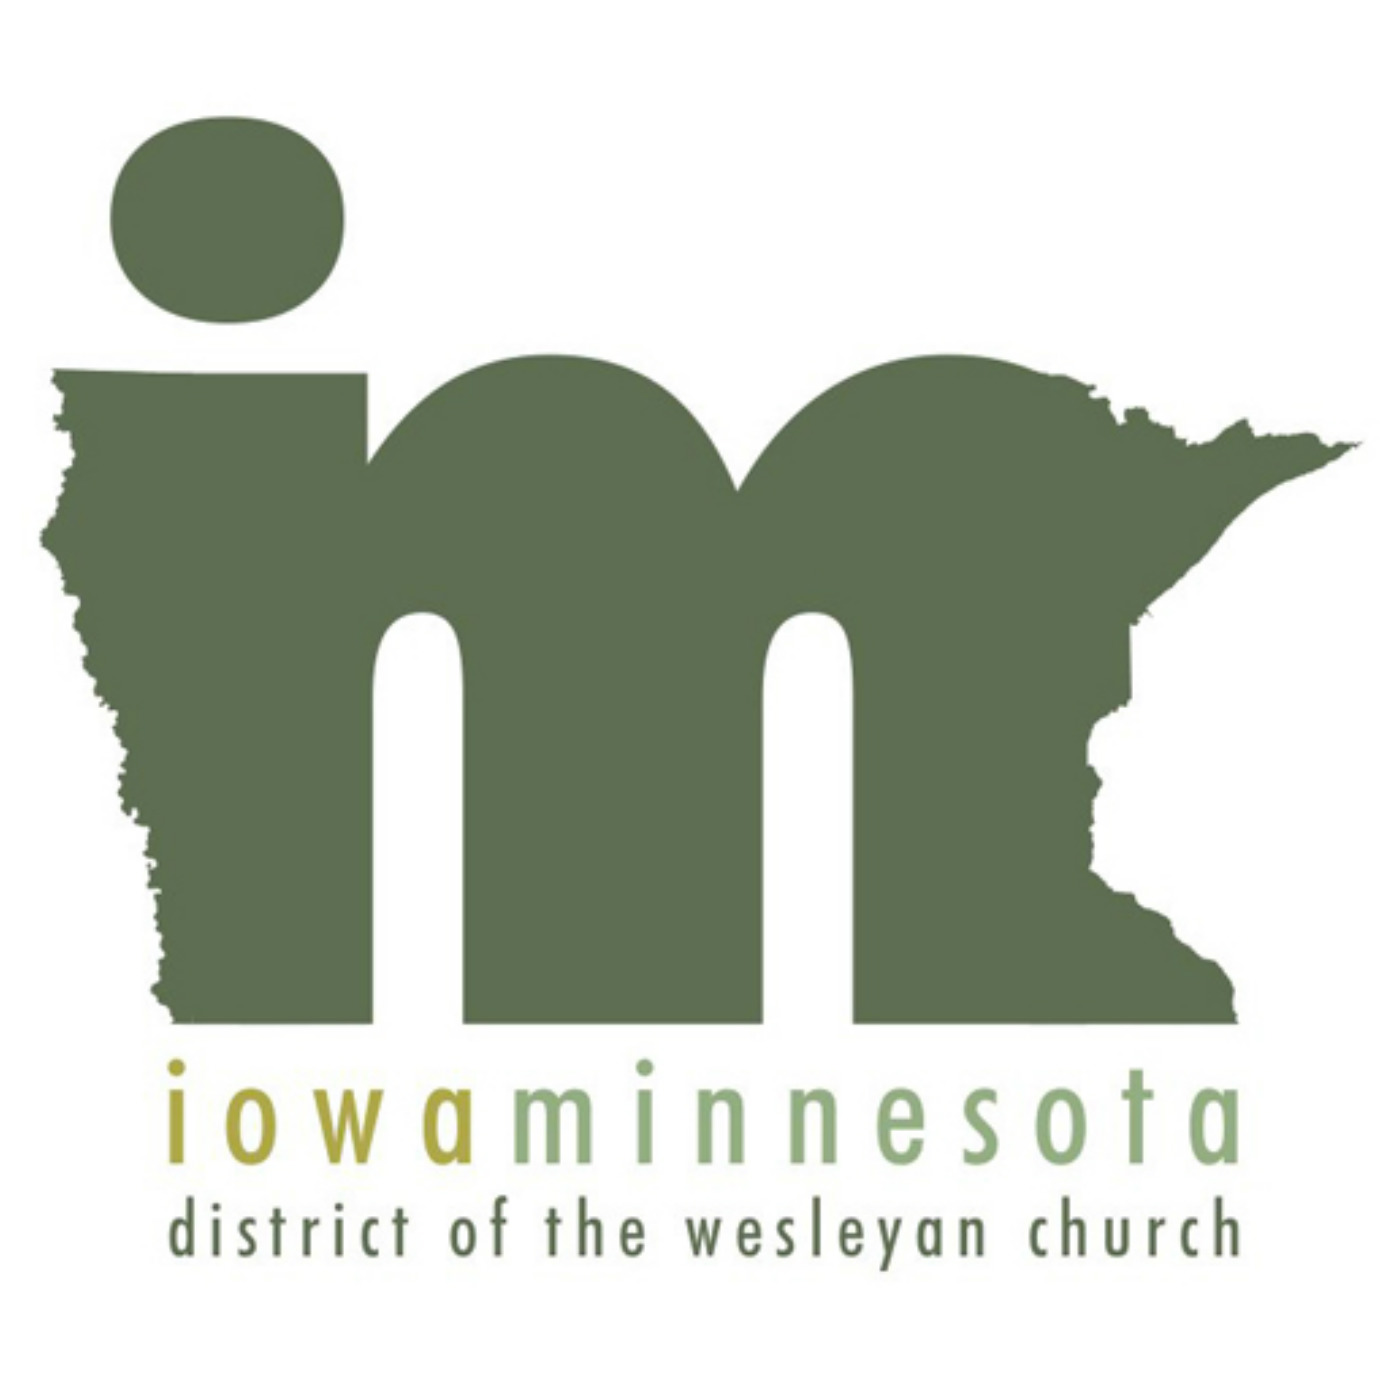 IA/MN District Podcast